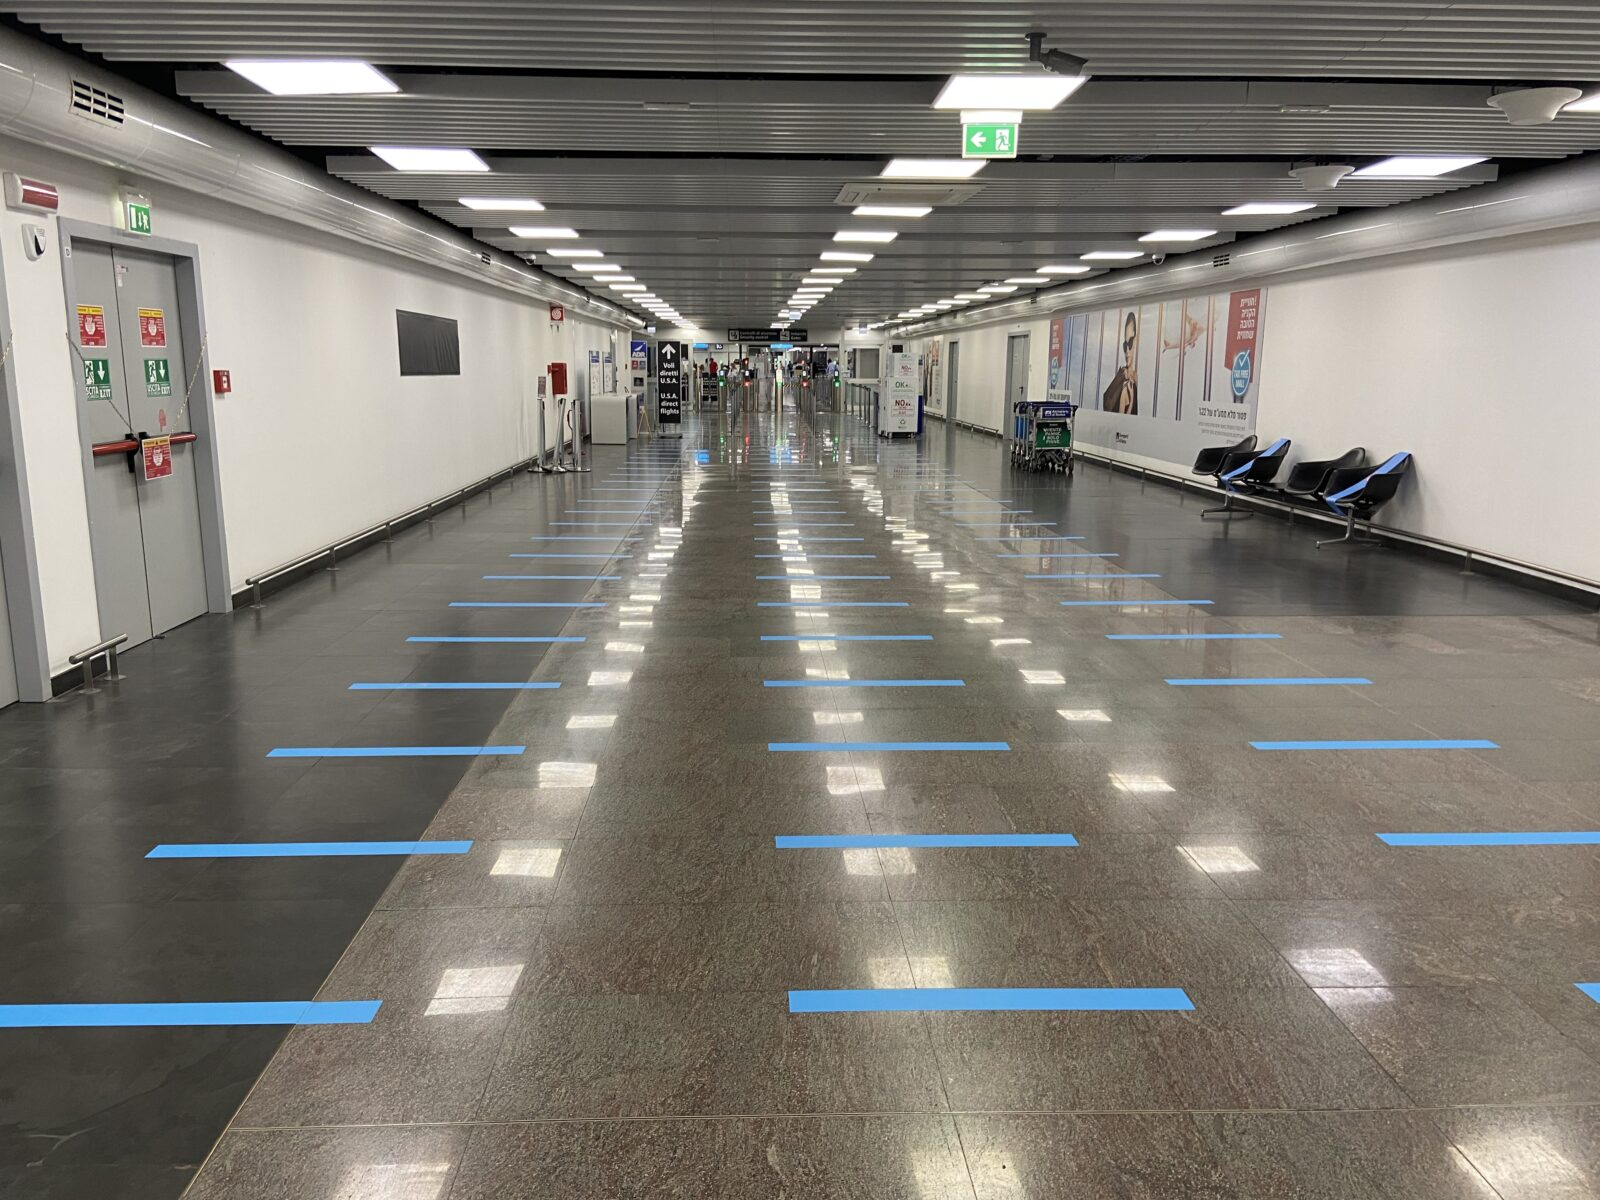 Rome's Fiumicino Airport still has few customers and the few must adhere to regulations.